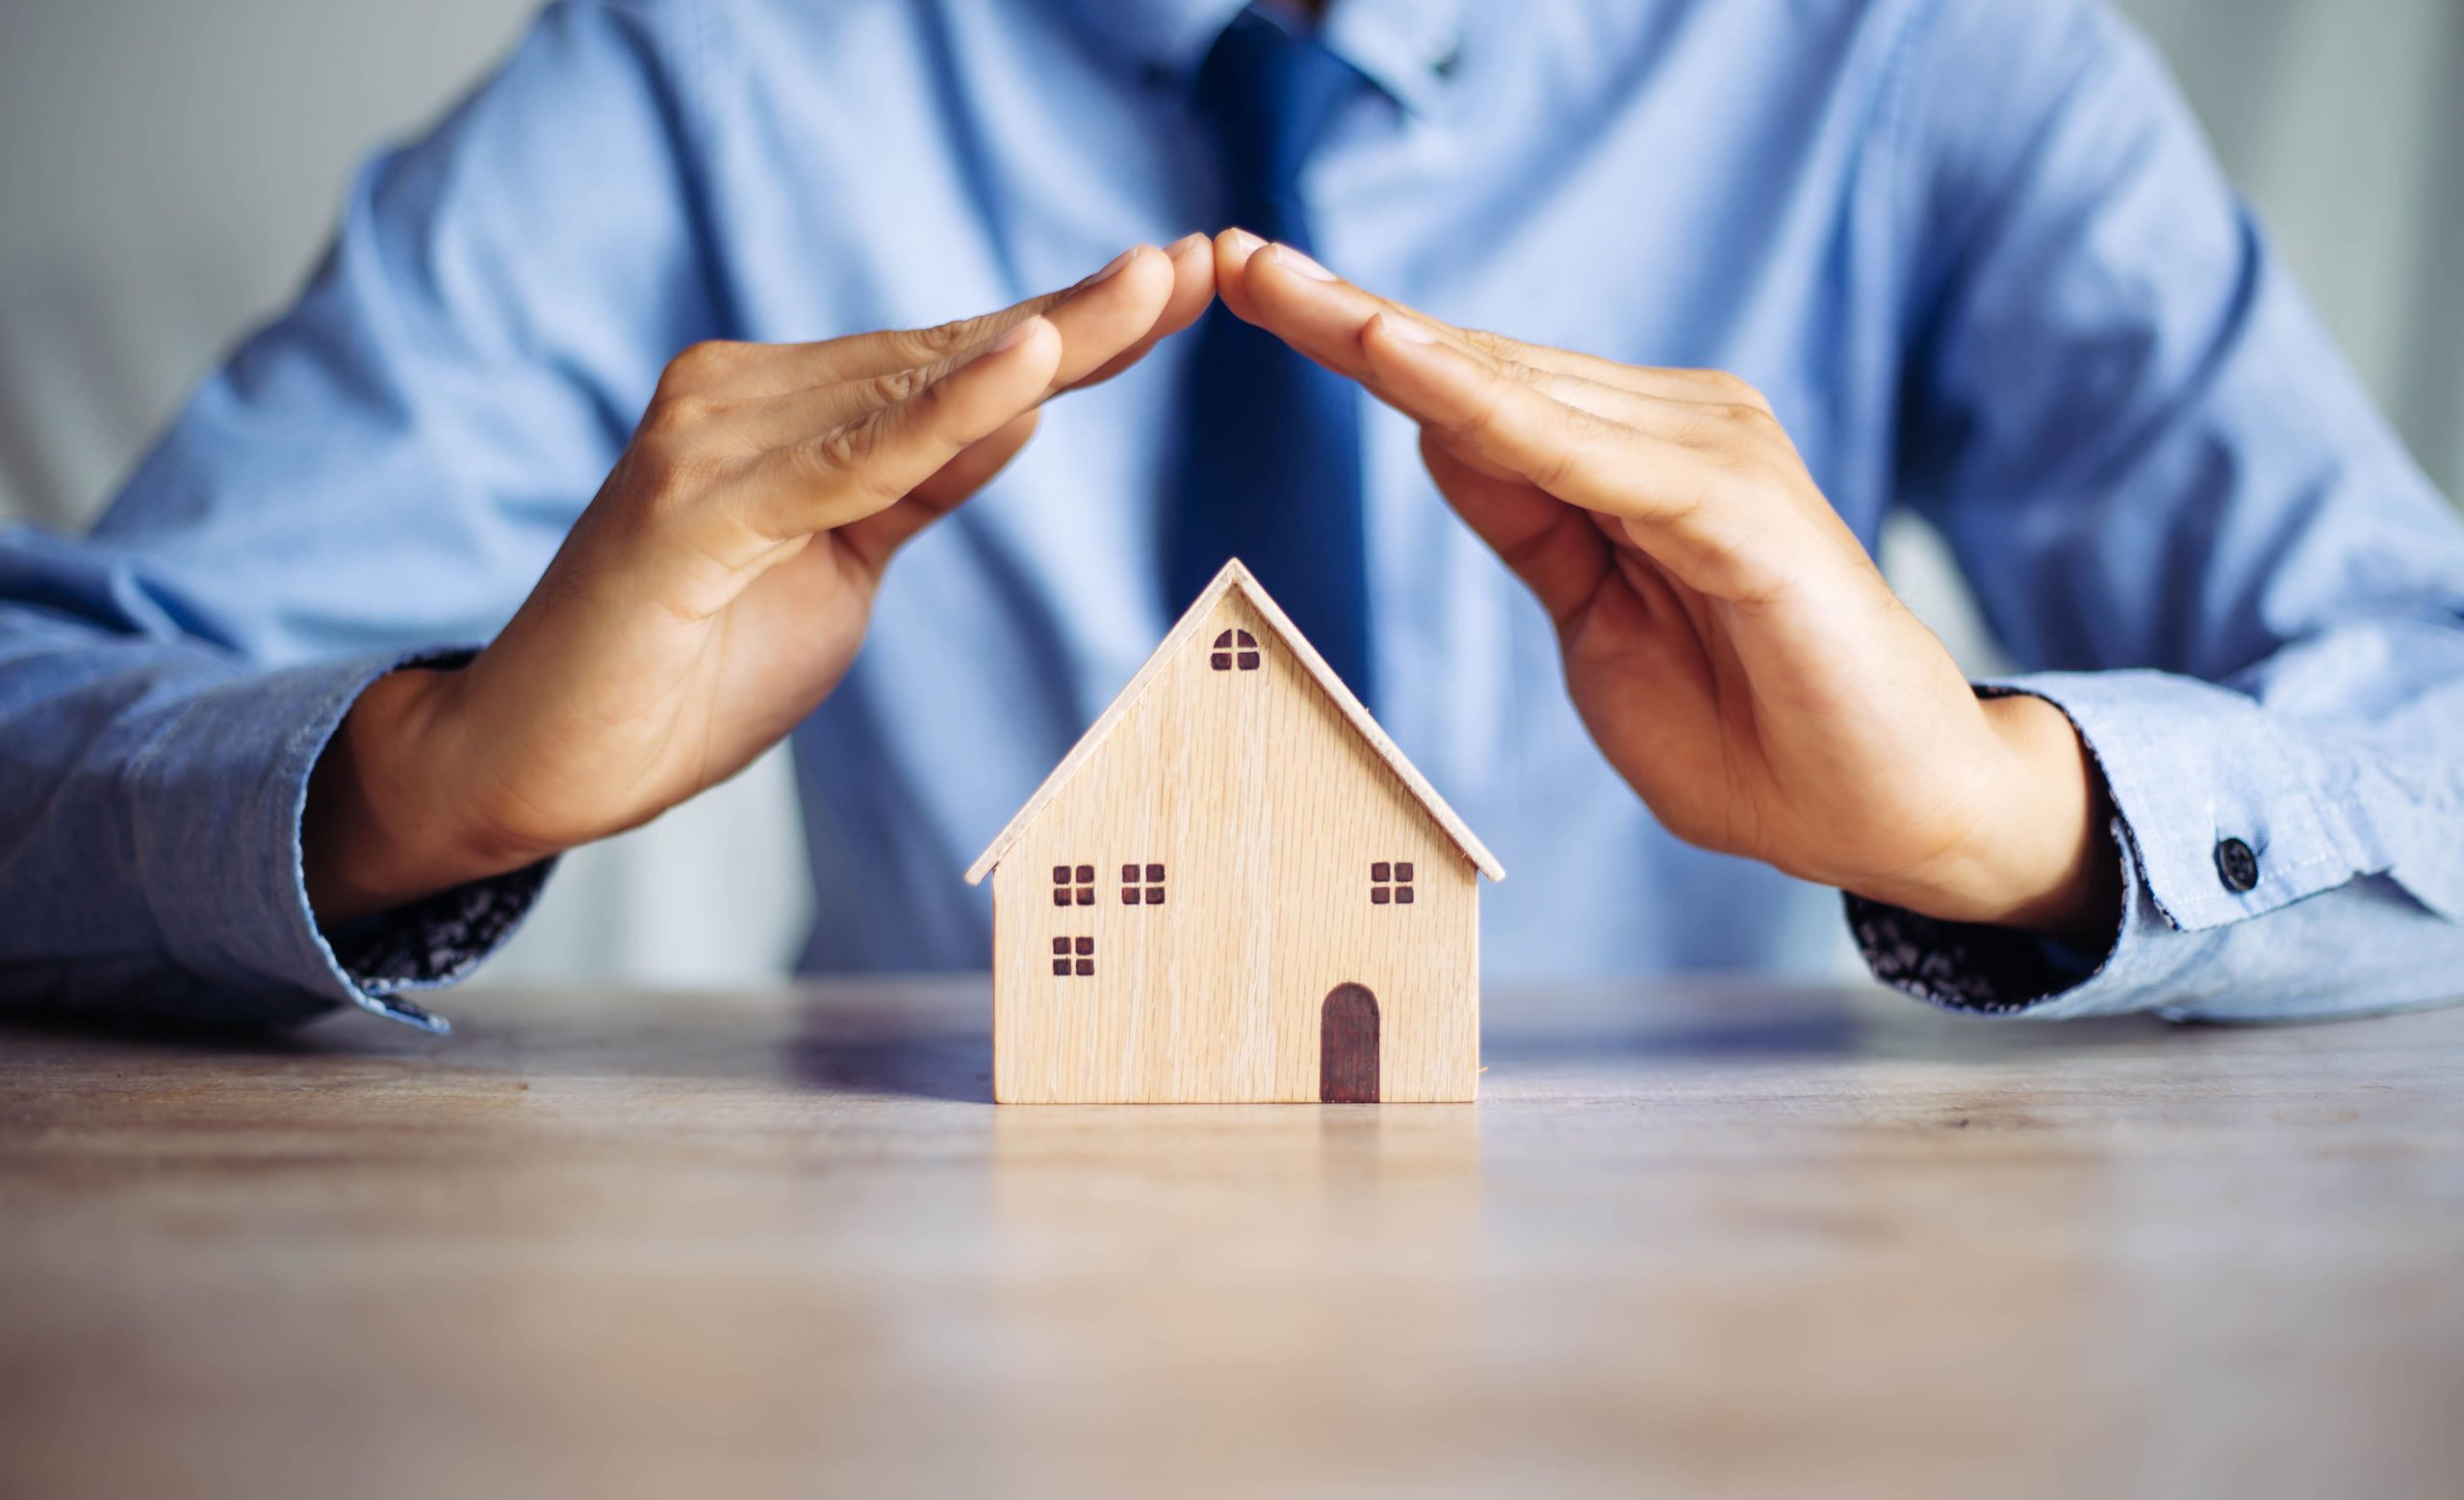 What is Mortgage Default Insurance, and how can it help you buy a house?